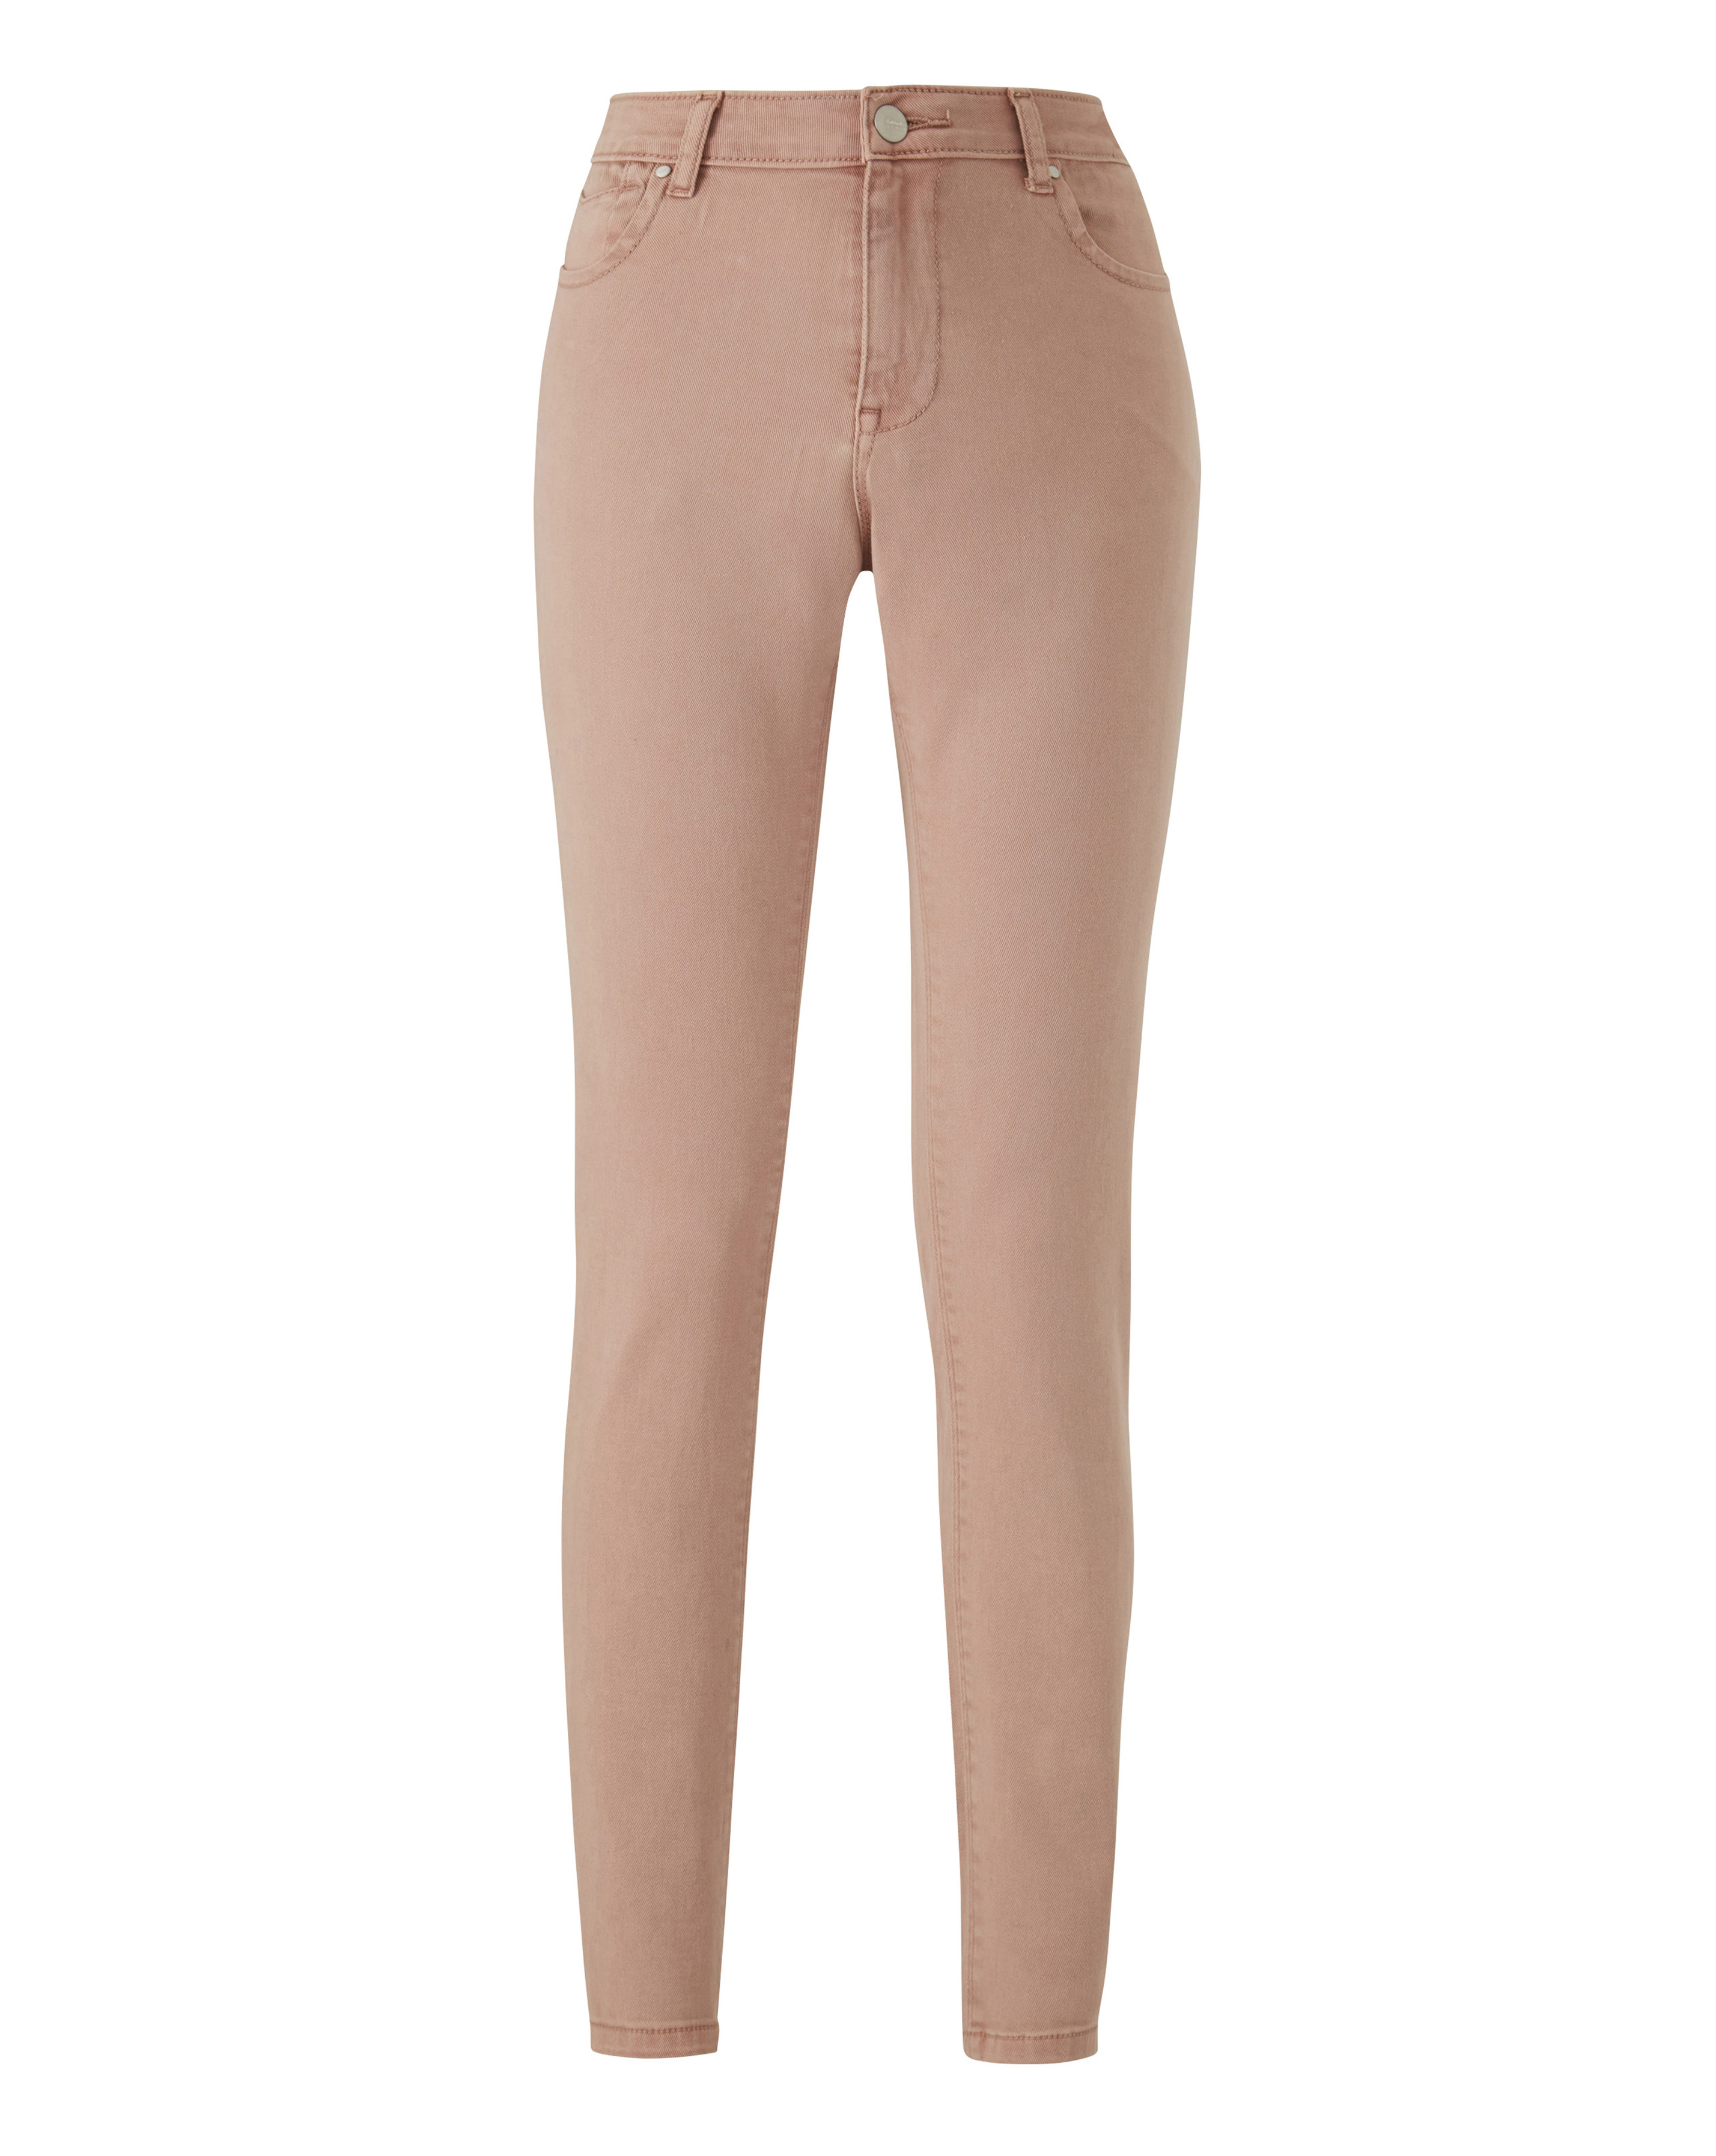 New-Simply-Be-Womens-Plus-Size-Sadie-Relaxed-Skinny-Jeans